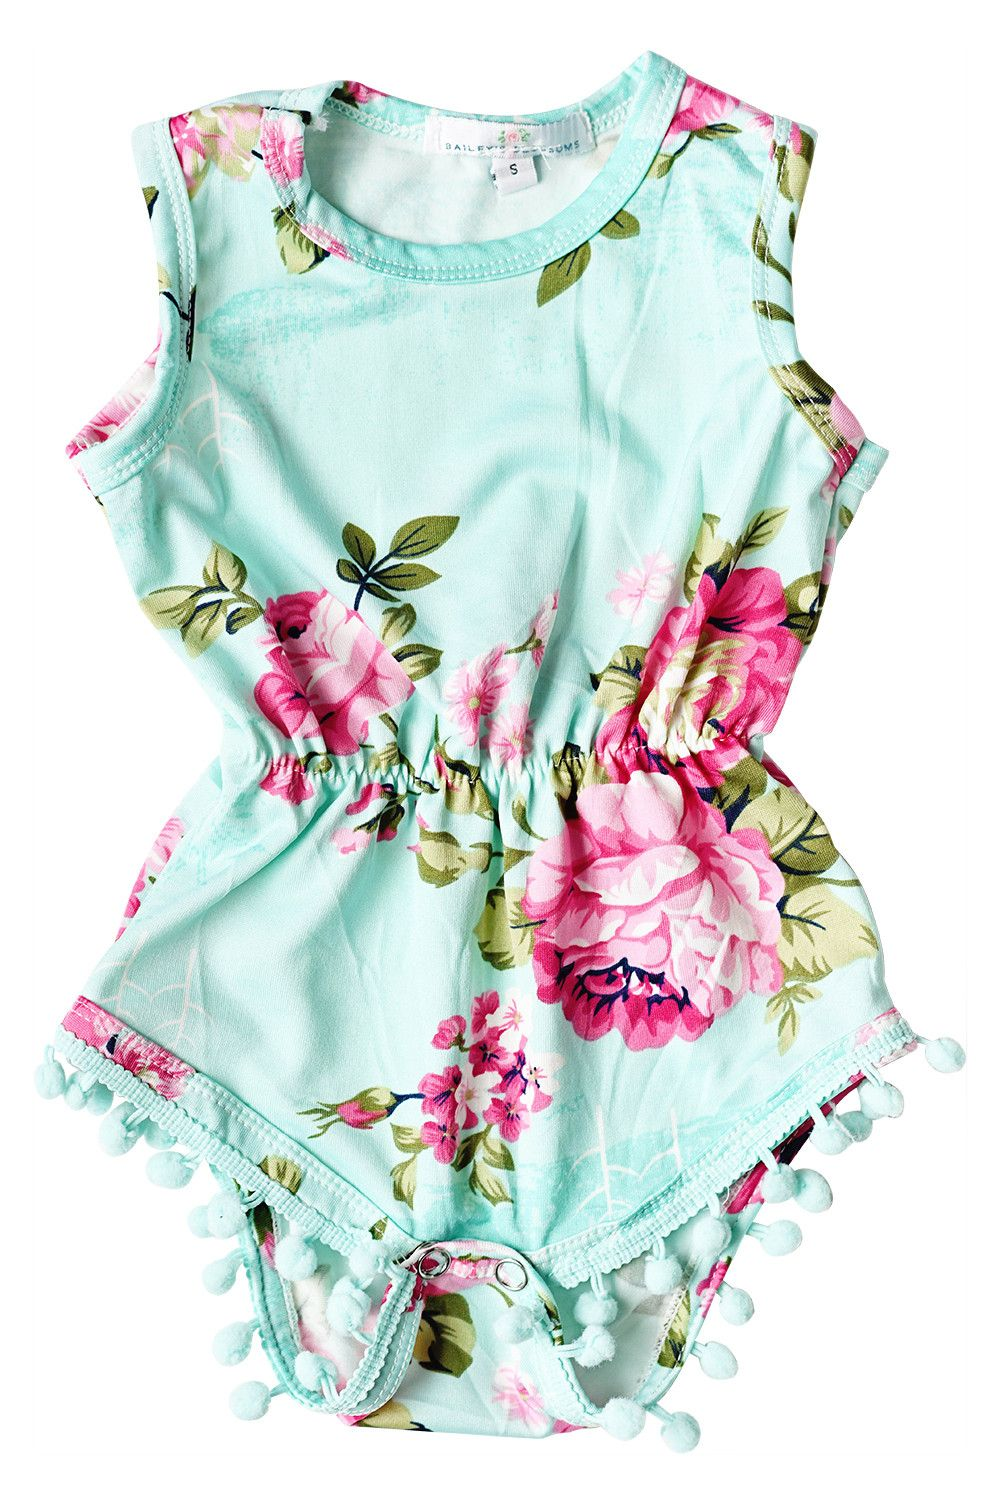 90871fdebb Sweet Mint Pom Pom Romper from More Than Me | More Than Me ...